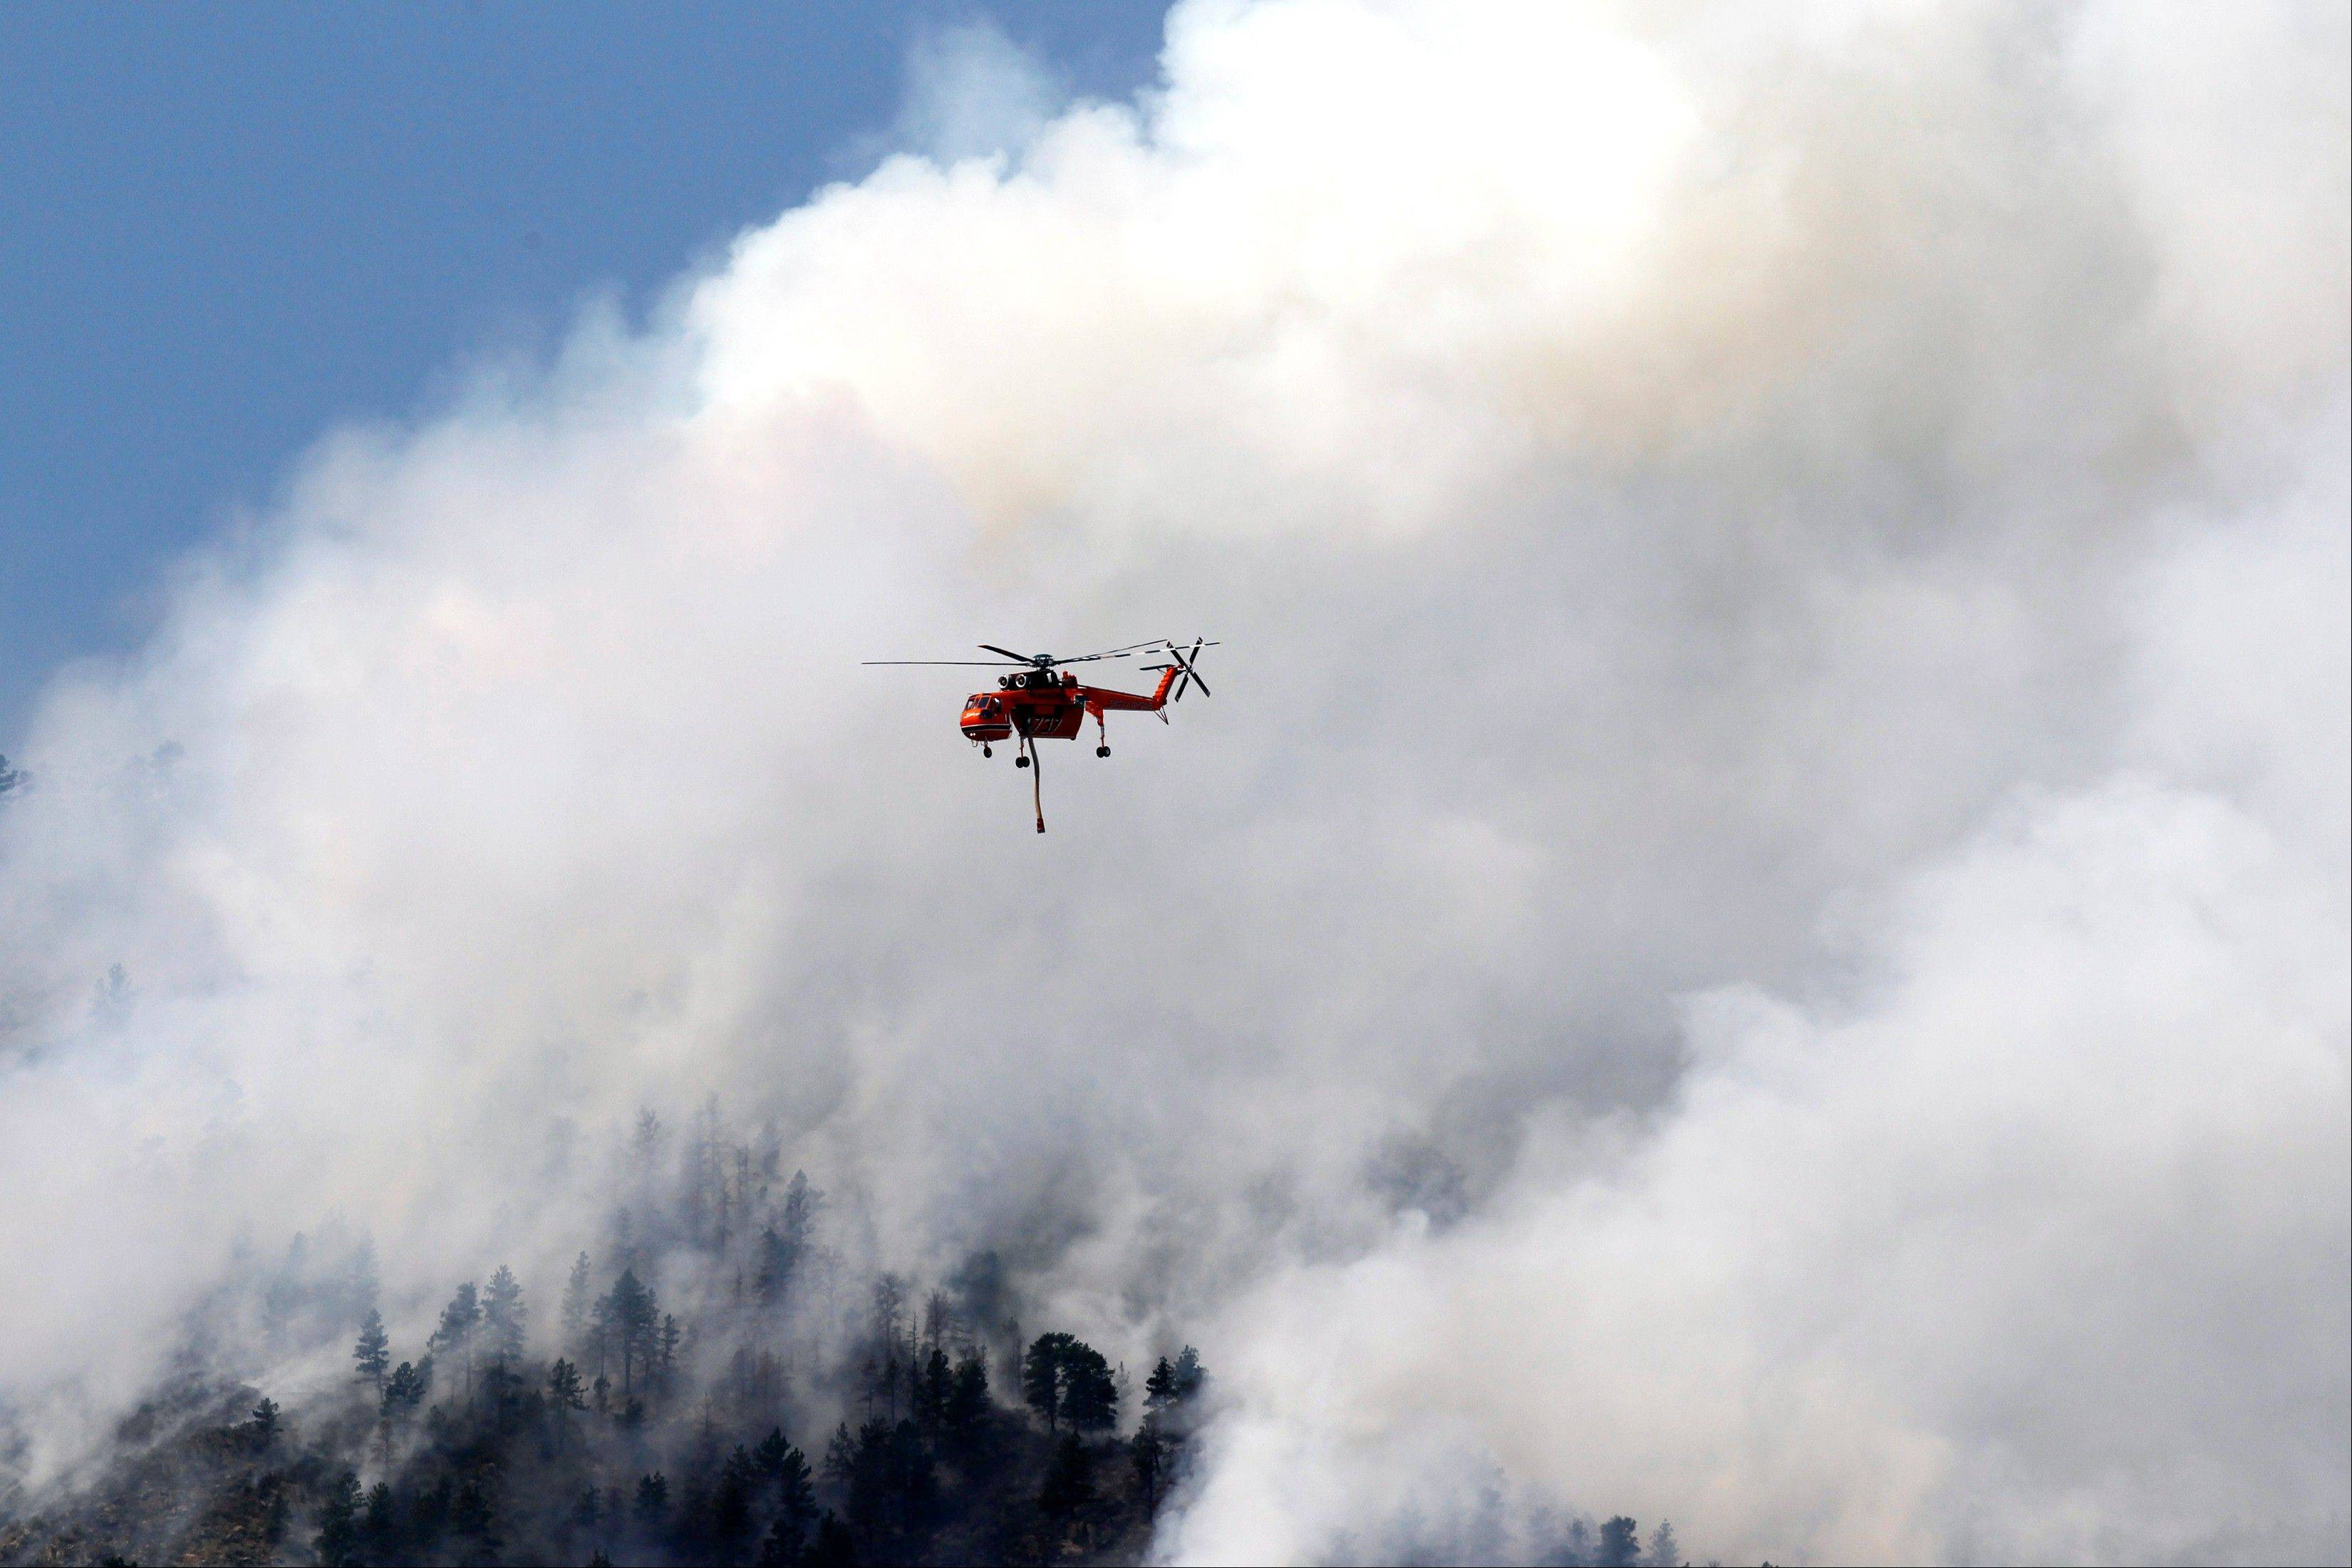 A helicopter flies through smoke after making a water drop on the High Park wildfire near Fort Collins, Colo., on Monday, June 11, 2012. The wildfire is burning out of control in northern Colorado, while an unchecked blaze choked a small community in southern New Mexico as authorities in both regions battled fires Monday.